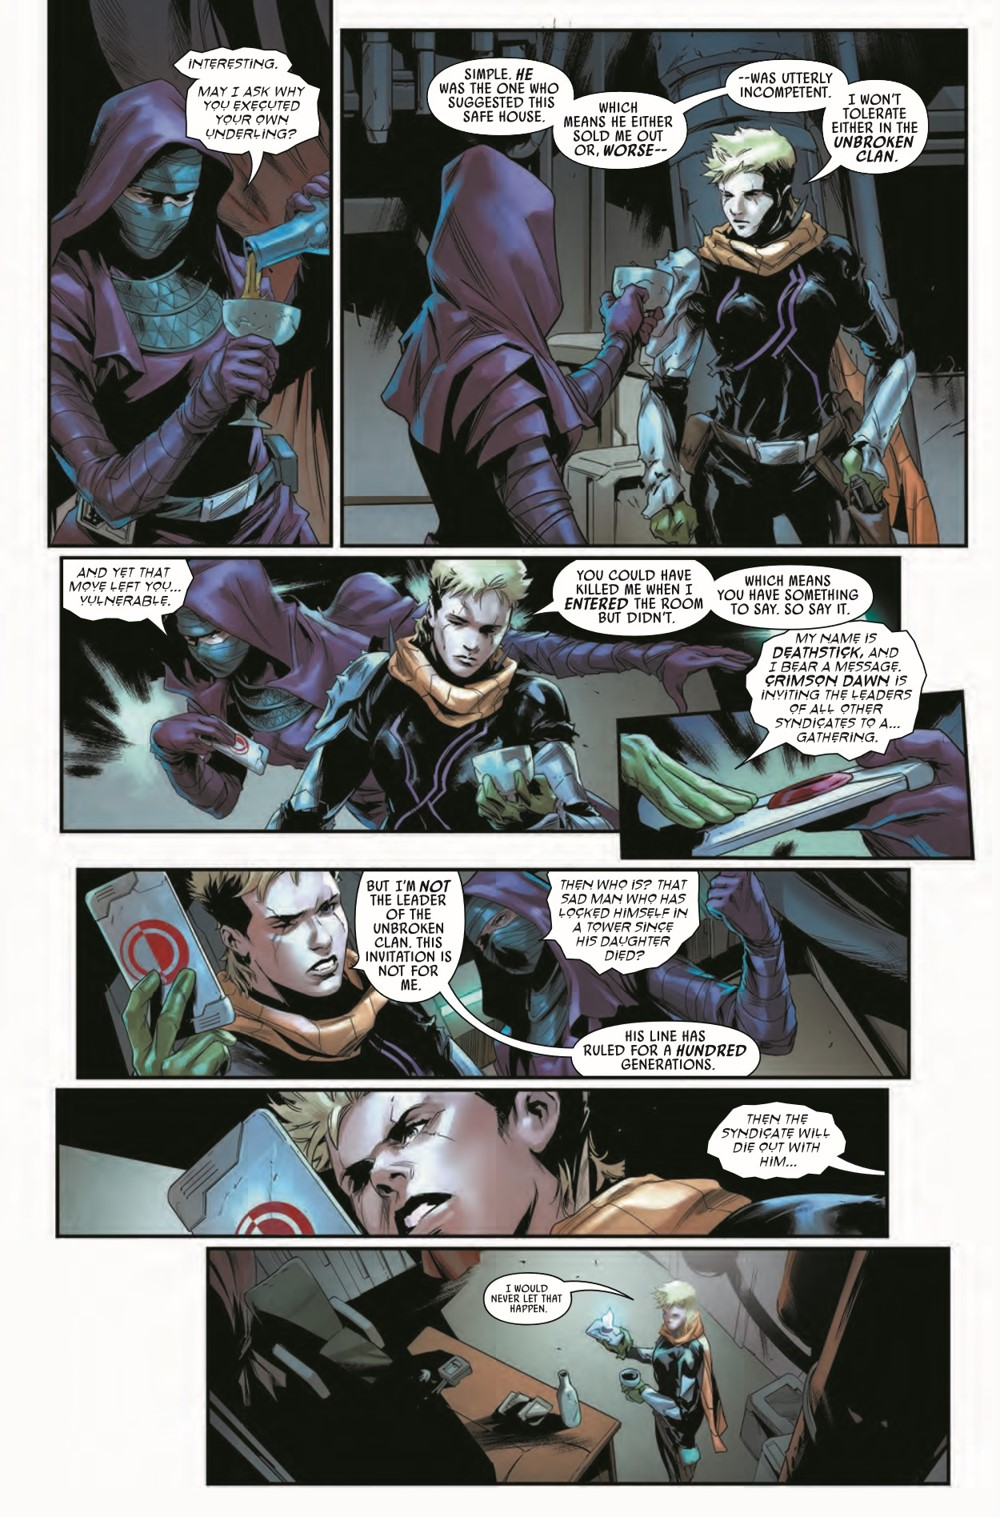 STWBOUNTYHUNT2020015_Preview-5 ComicList Previews: STAR WARS BOUNTY HUNTERS #15